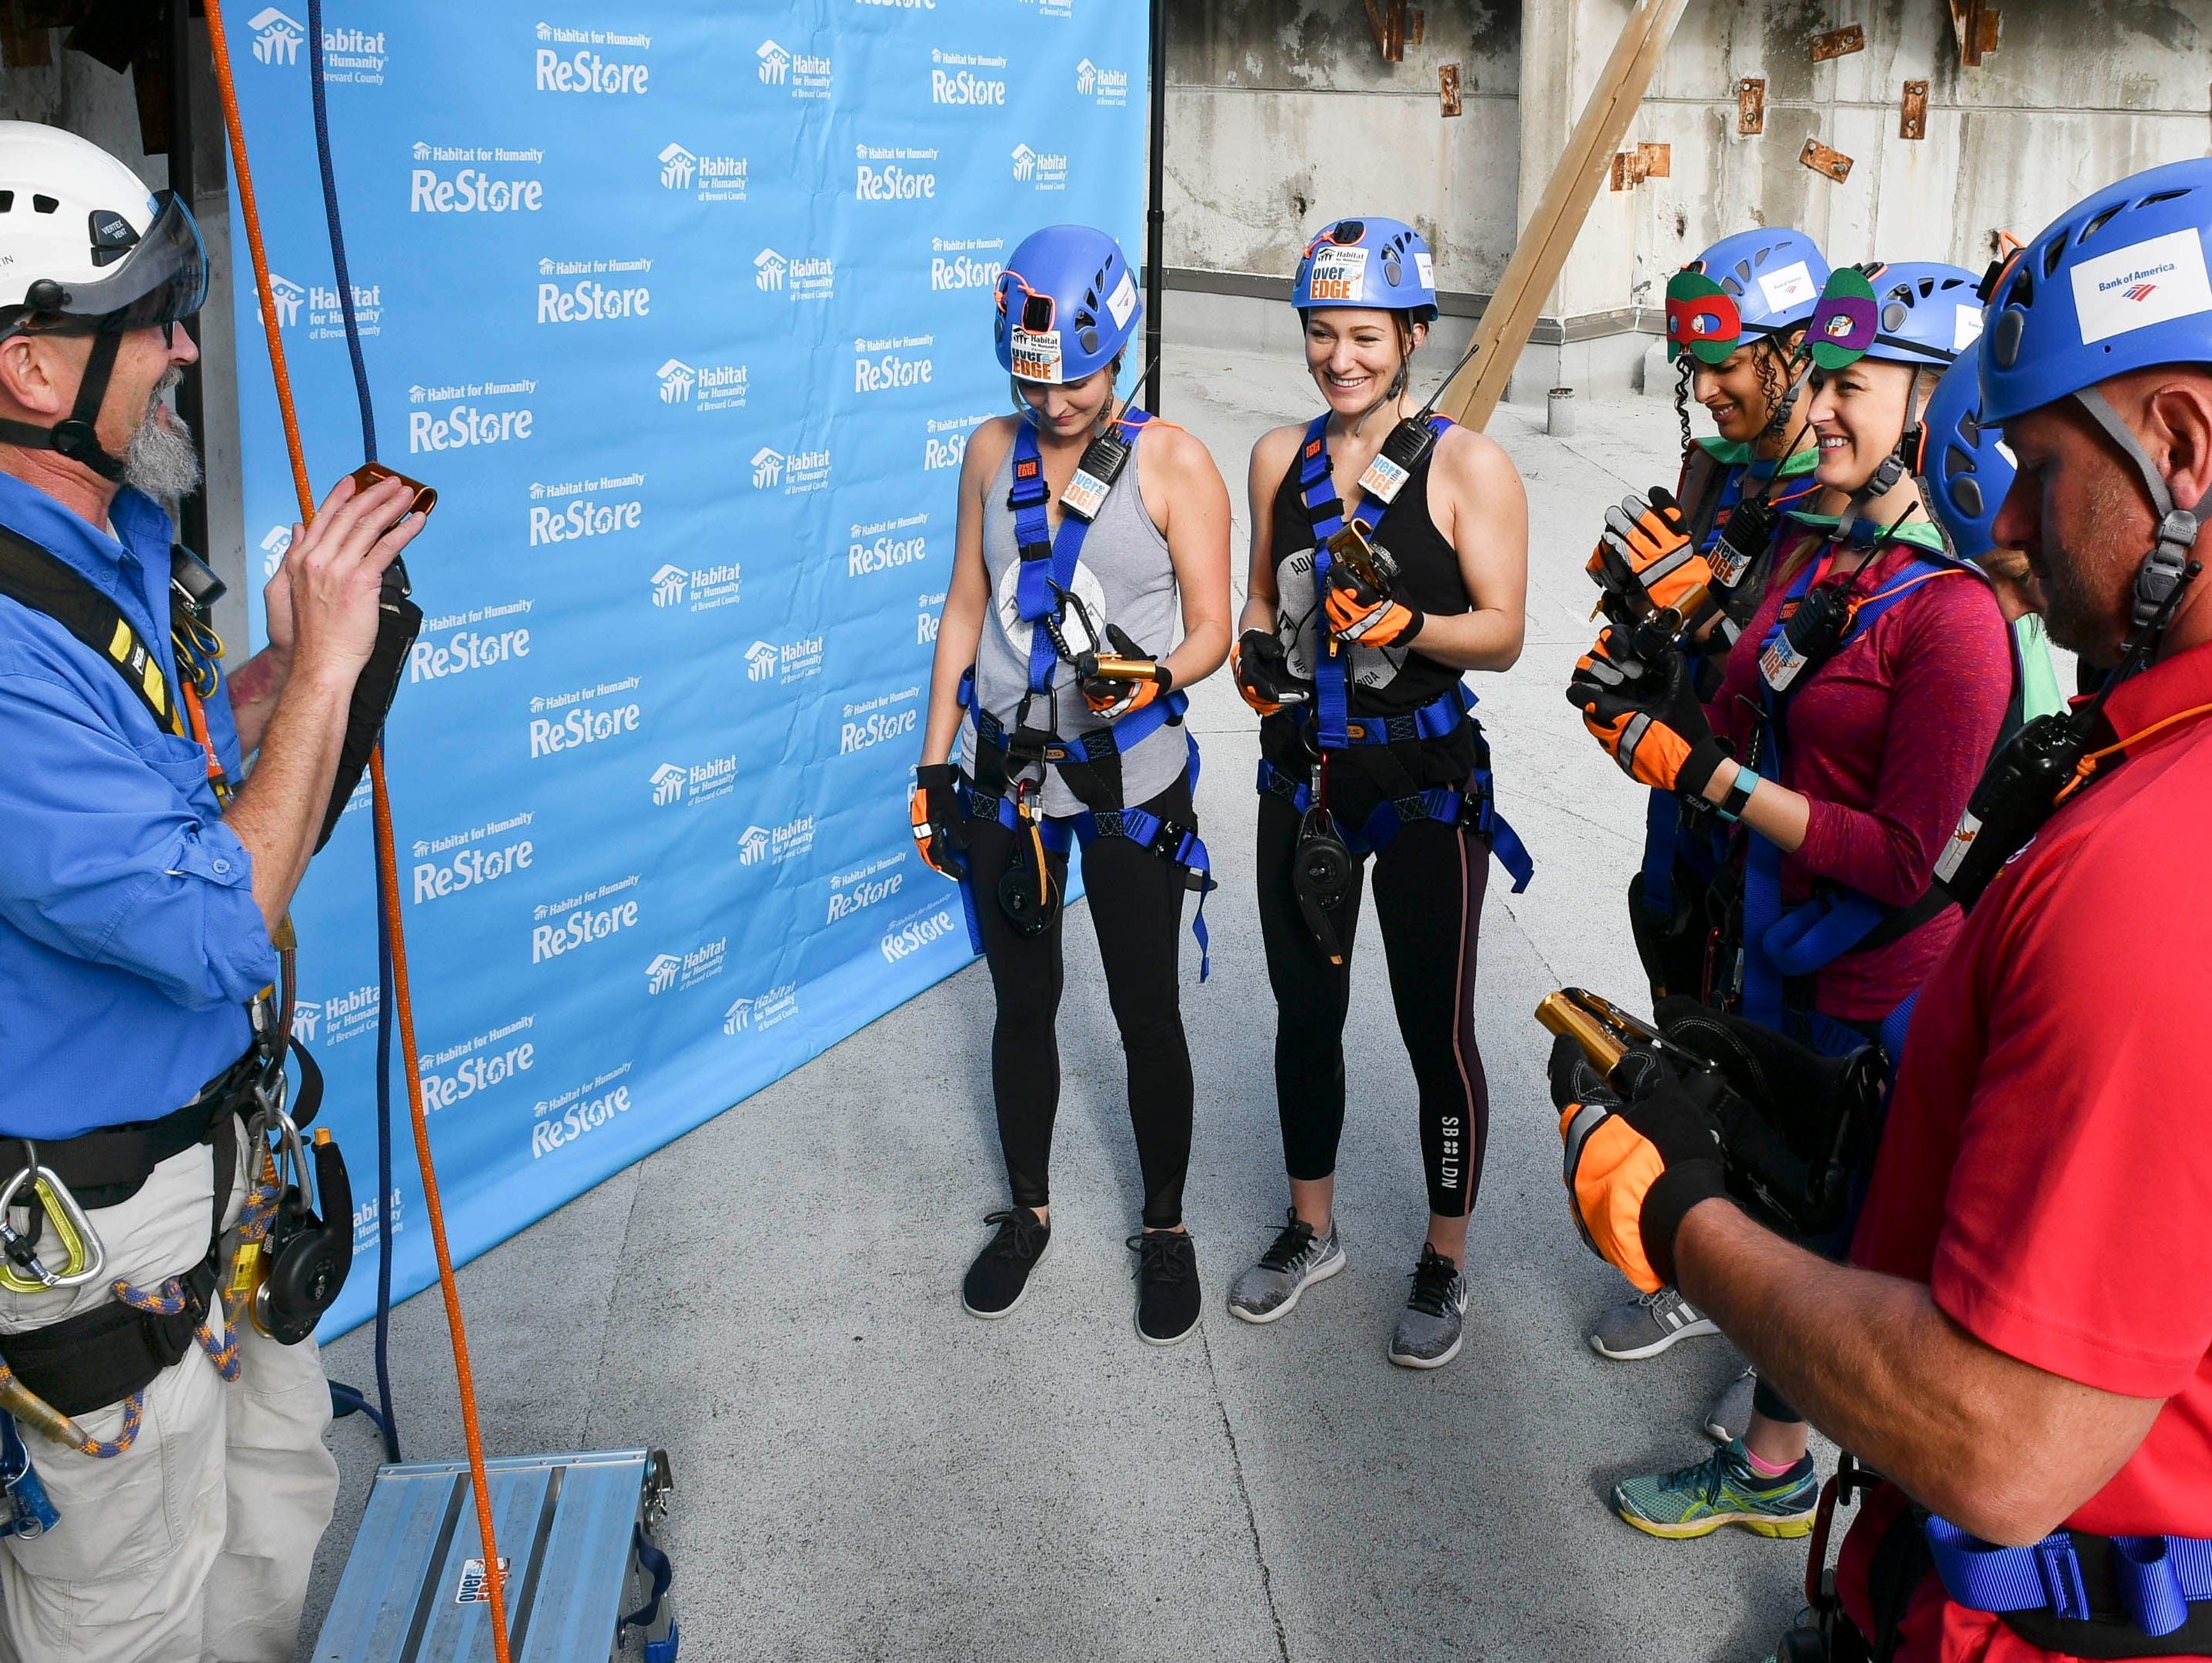 Jeff Martin instructs participants in how to use the ropes before they go Over the Edge at the Melbourne Rialto Hilton on Saturday morning. Over the Edge is a fundraiser for Habitat Humanity of Brevard, an organization that helps low-income families buy affordable houses. Teams and individuals raised money for the chance to rappel eight stories down the Hilton.